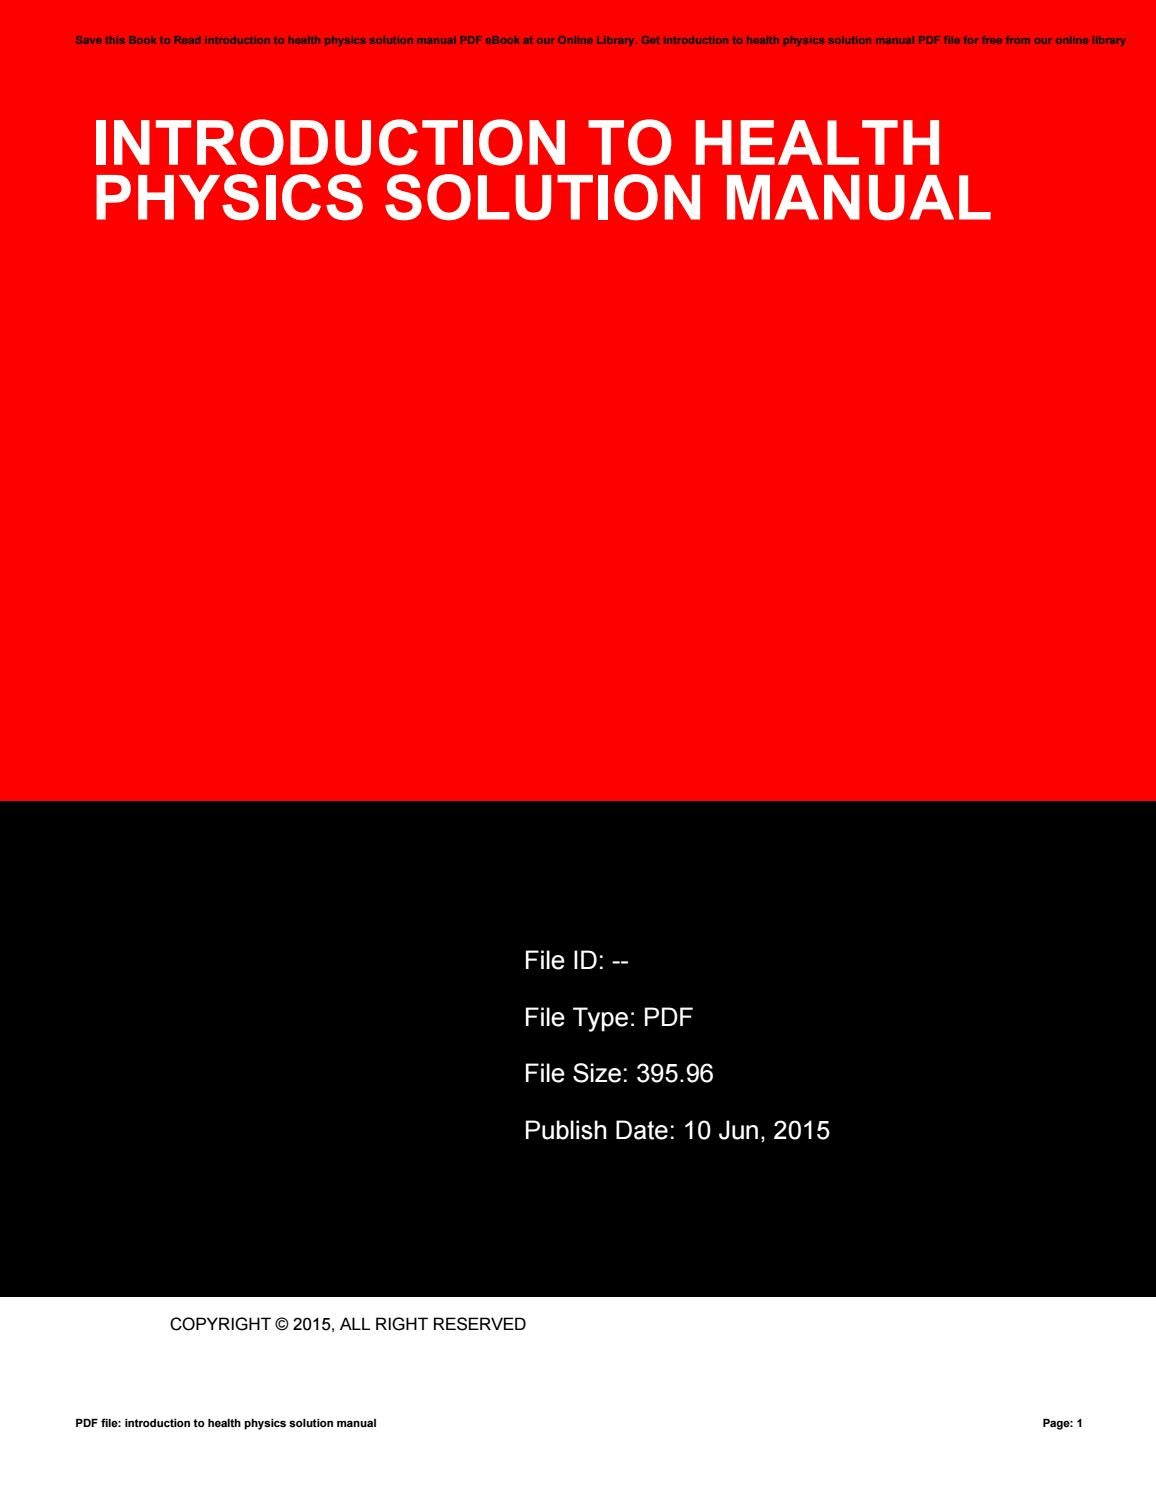 Introduction to health physics solution manual by ElizabethJohnson19891 -  issuu